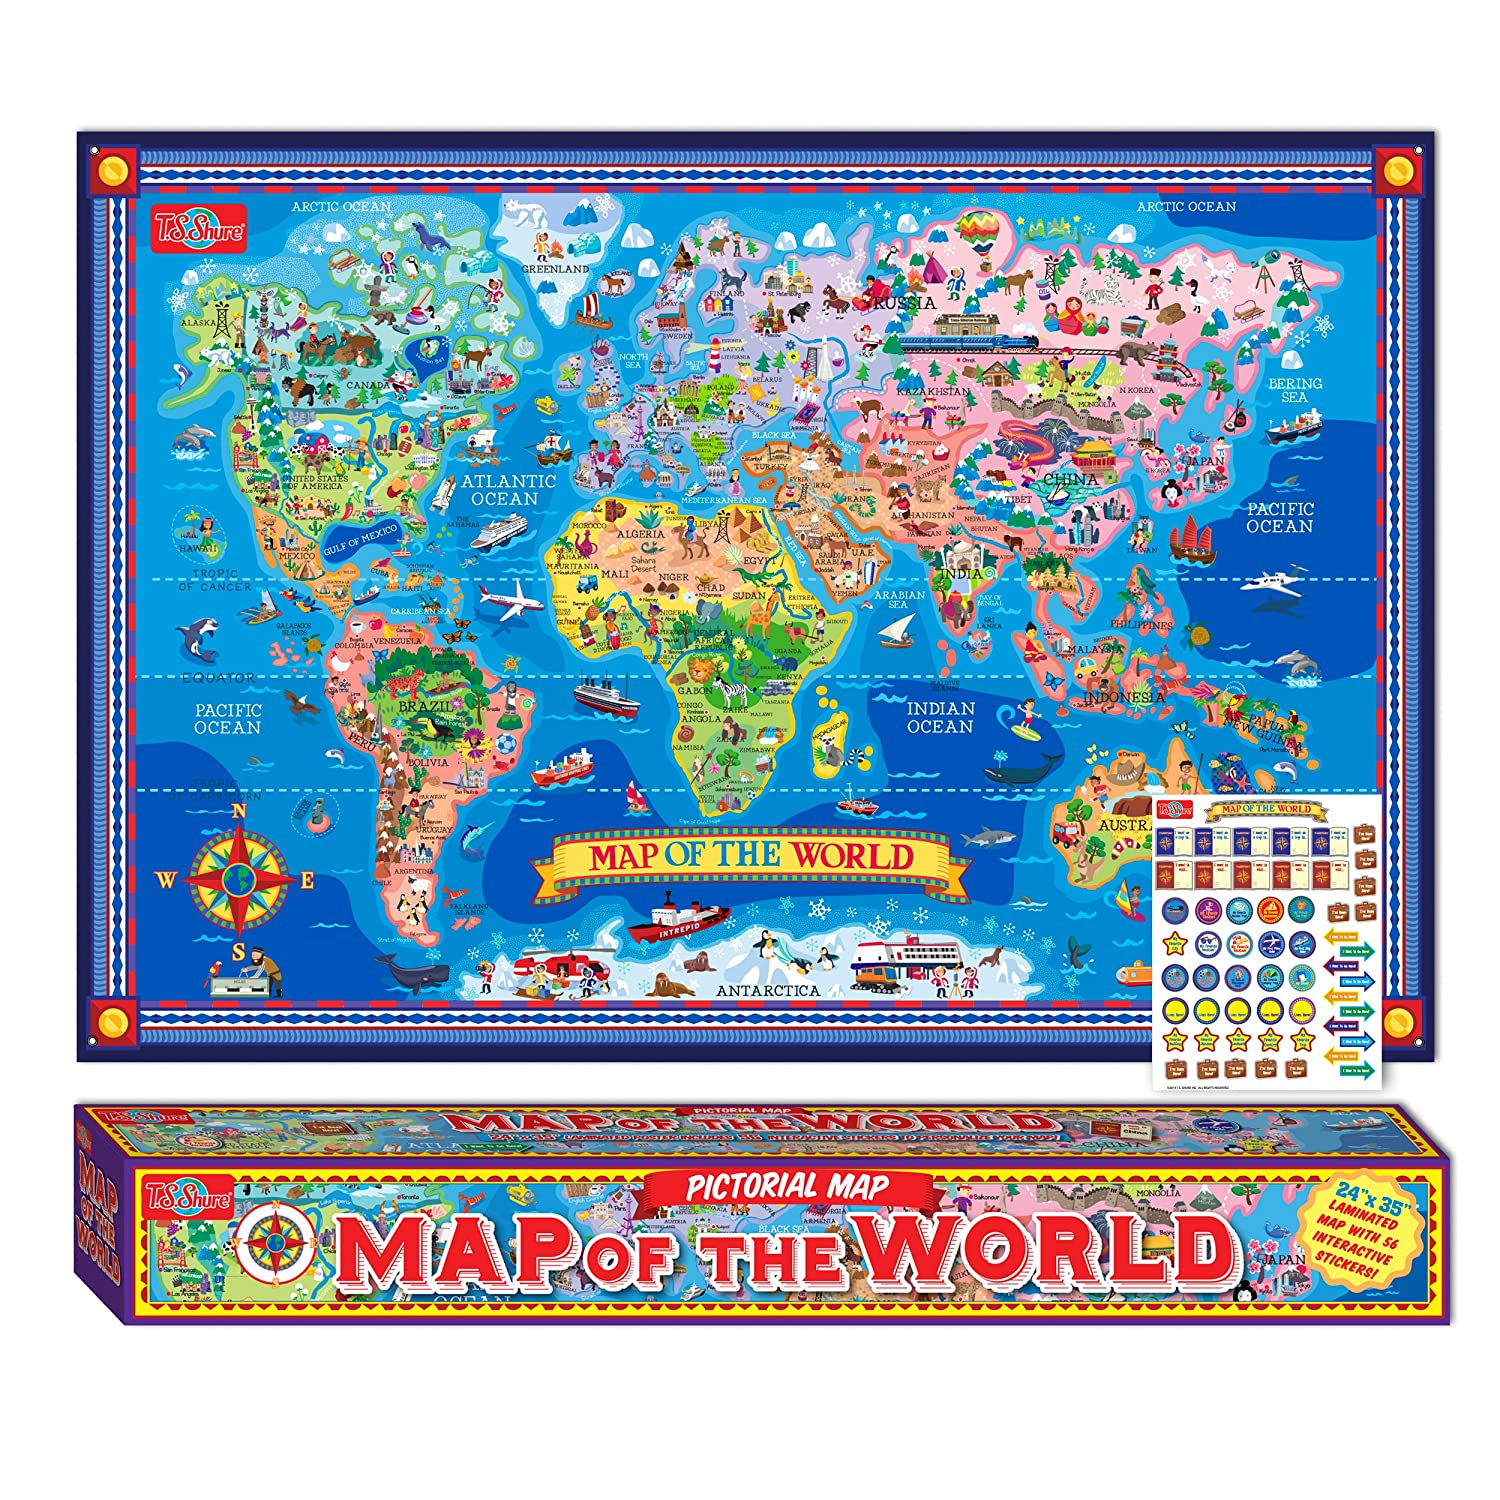 Amazoncom TS Shure Pictorial Map Of The World Laminated - Interactive map for children